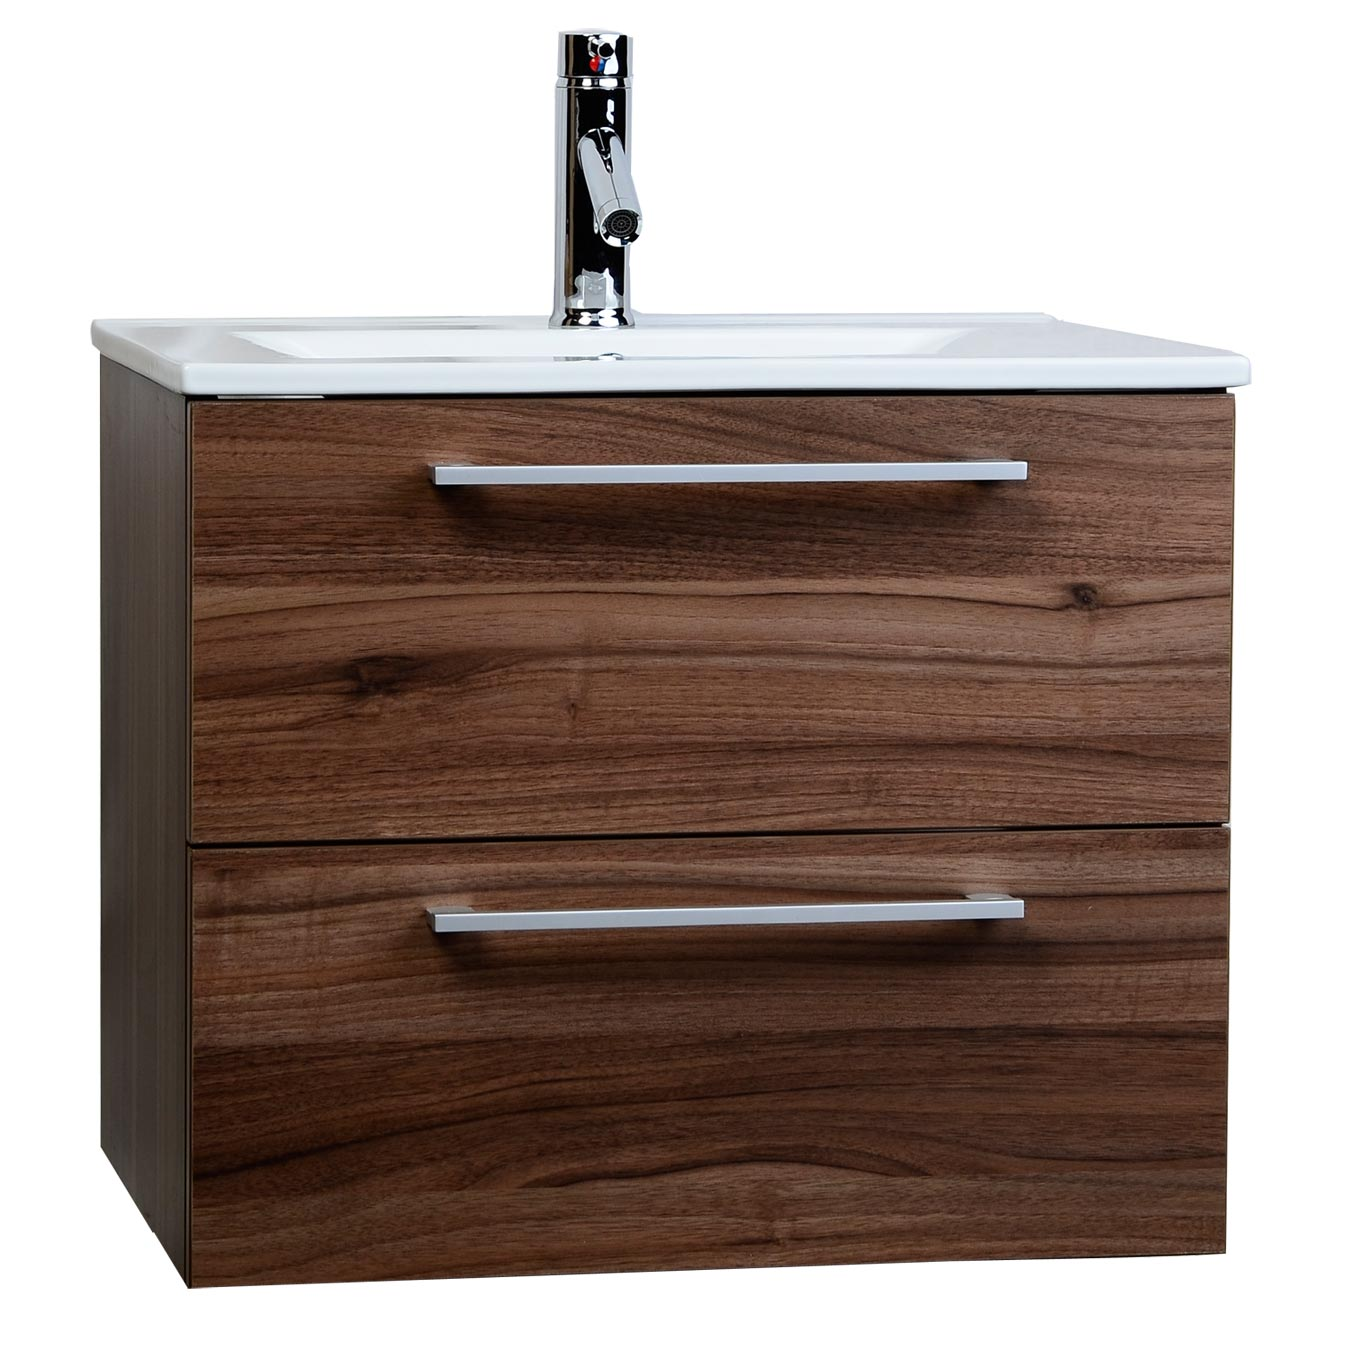 wall mounted dresser european styled caen 23 5 quot single bathroom vanity set in 13764